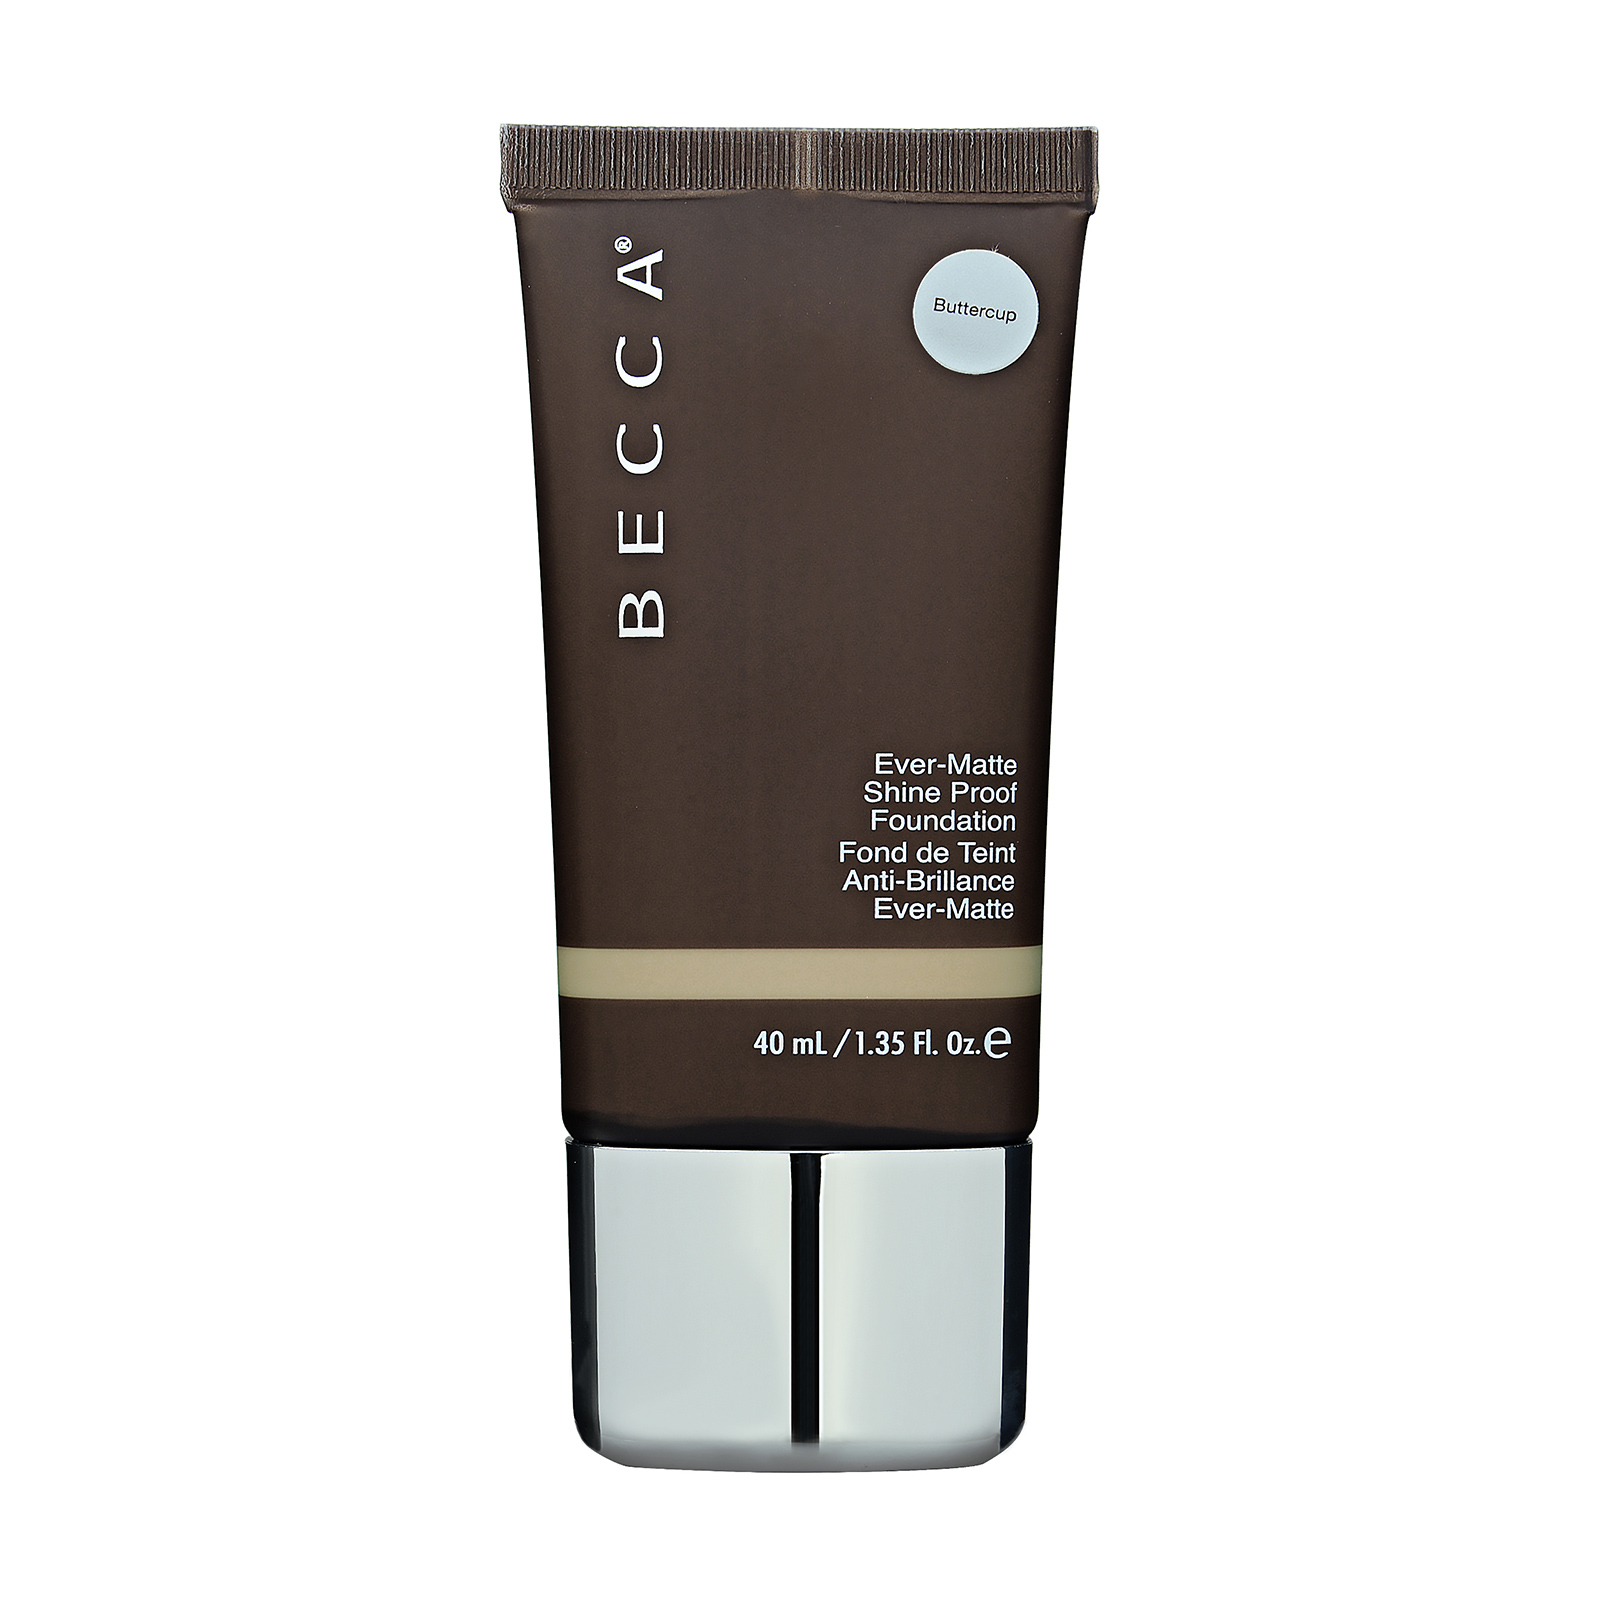 Becca  Ever-Matte Shine Proof Foundation Buttercup, 1.35oz, 40ml